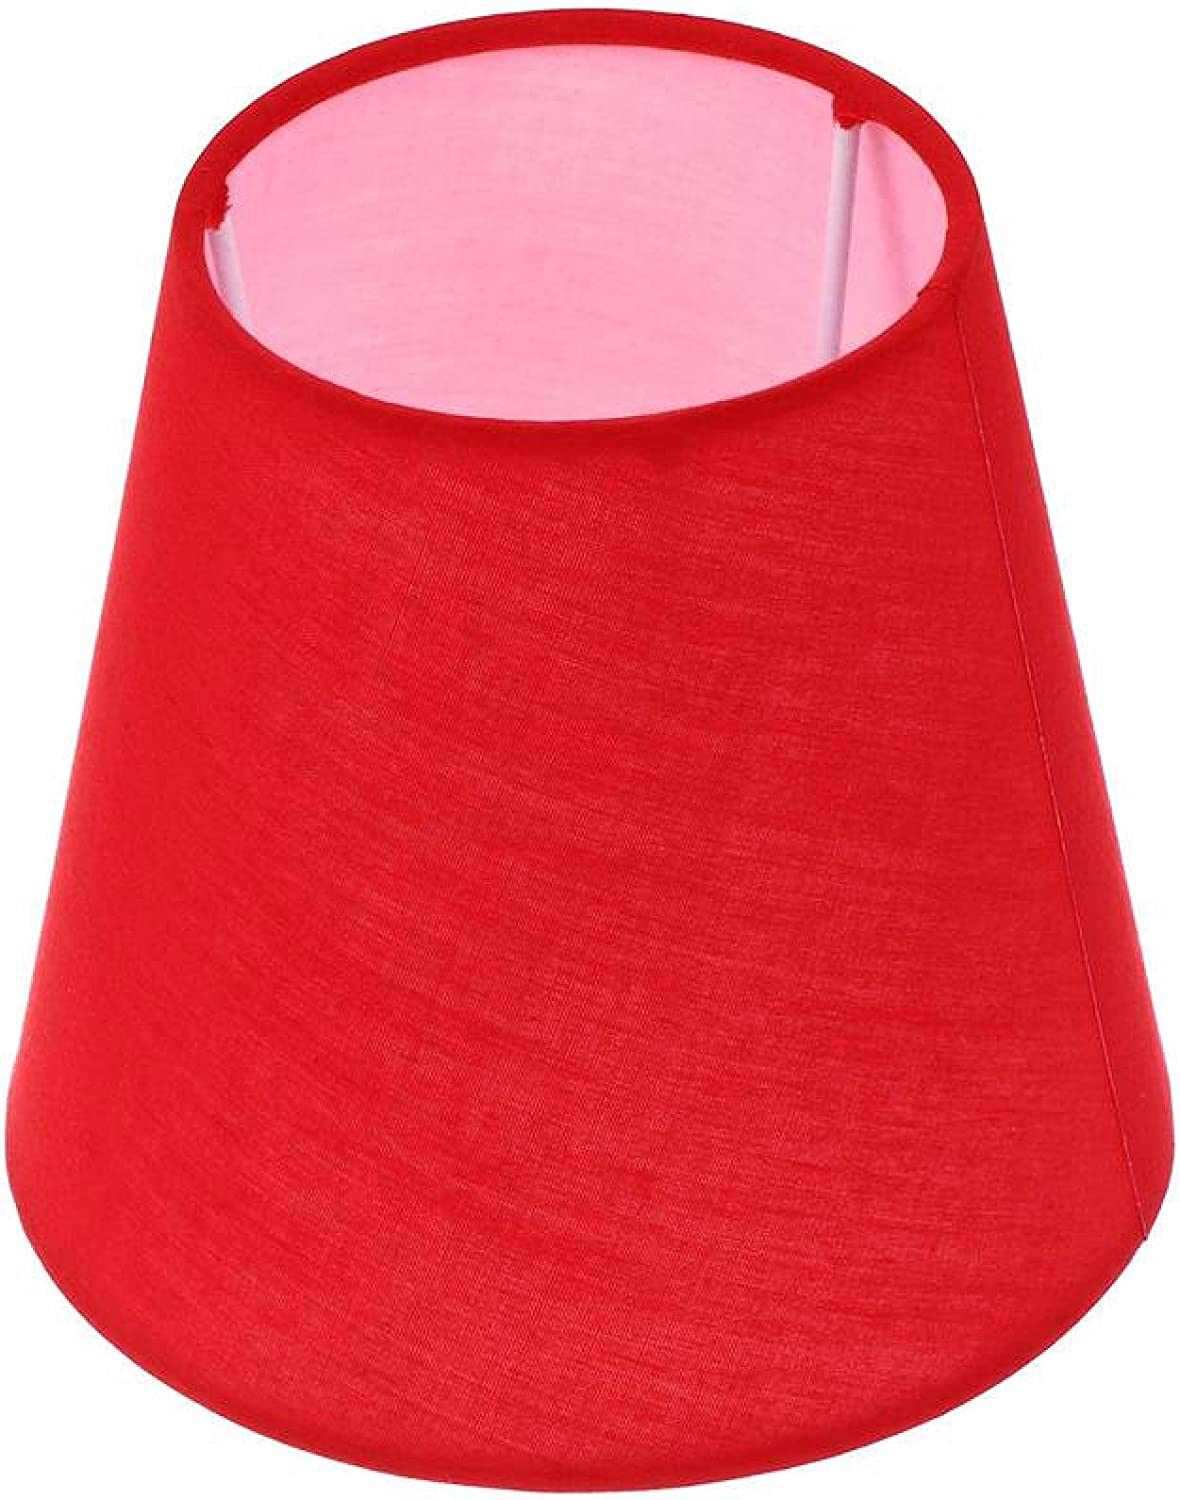 HSDKA Chandelier Lamp Shade National uniform free shipping 5.51x5.11in Dust Red Cov Wall Manufacturer direct delivery